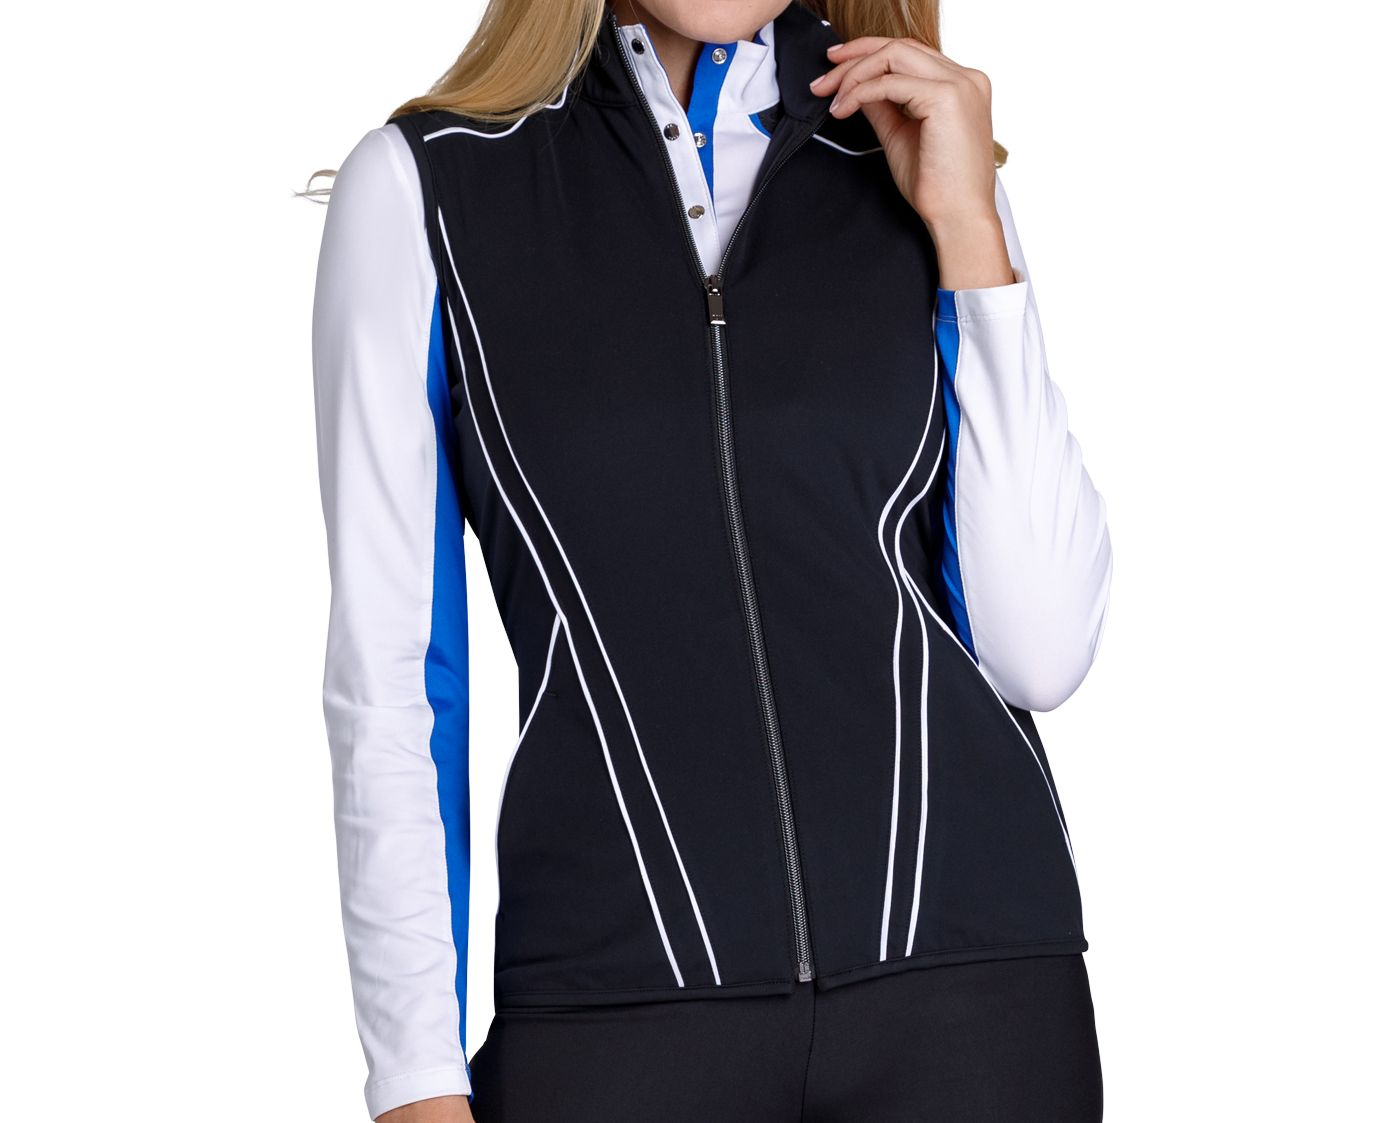 Tail Women's Comfort Knit Golf Vest